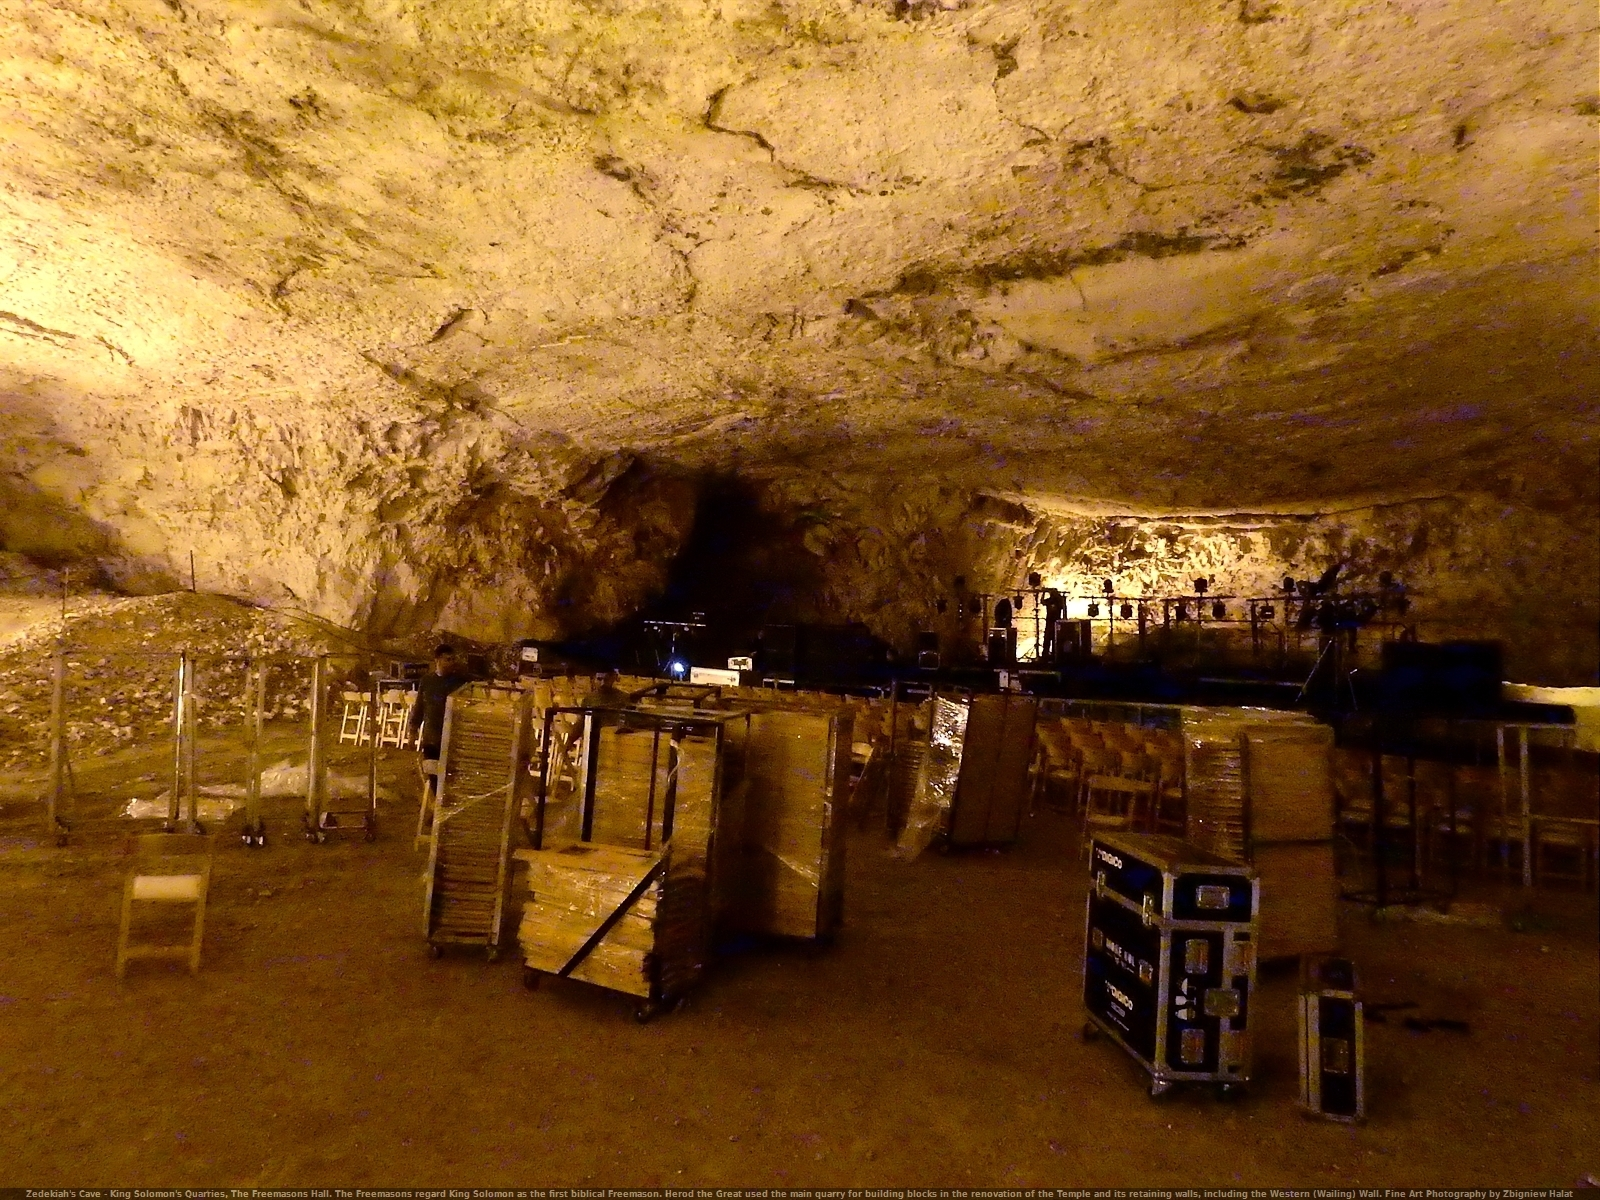 Zedekiah's Cave - King Solomon's Quarries, The Freemasons Hall. Herod the Great used the main quarry for building blocks in the renovation of the Temple and its retaining walls, including the Western (Wailing) Wall.Fine Art Photography by Zbigniew Halat